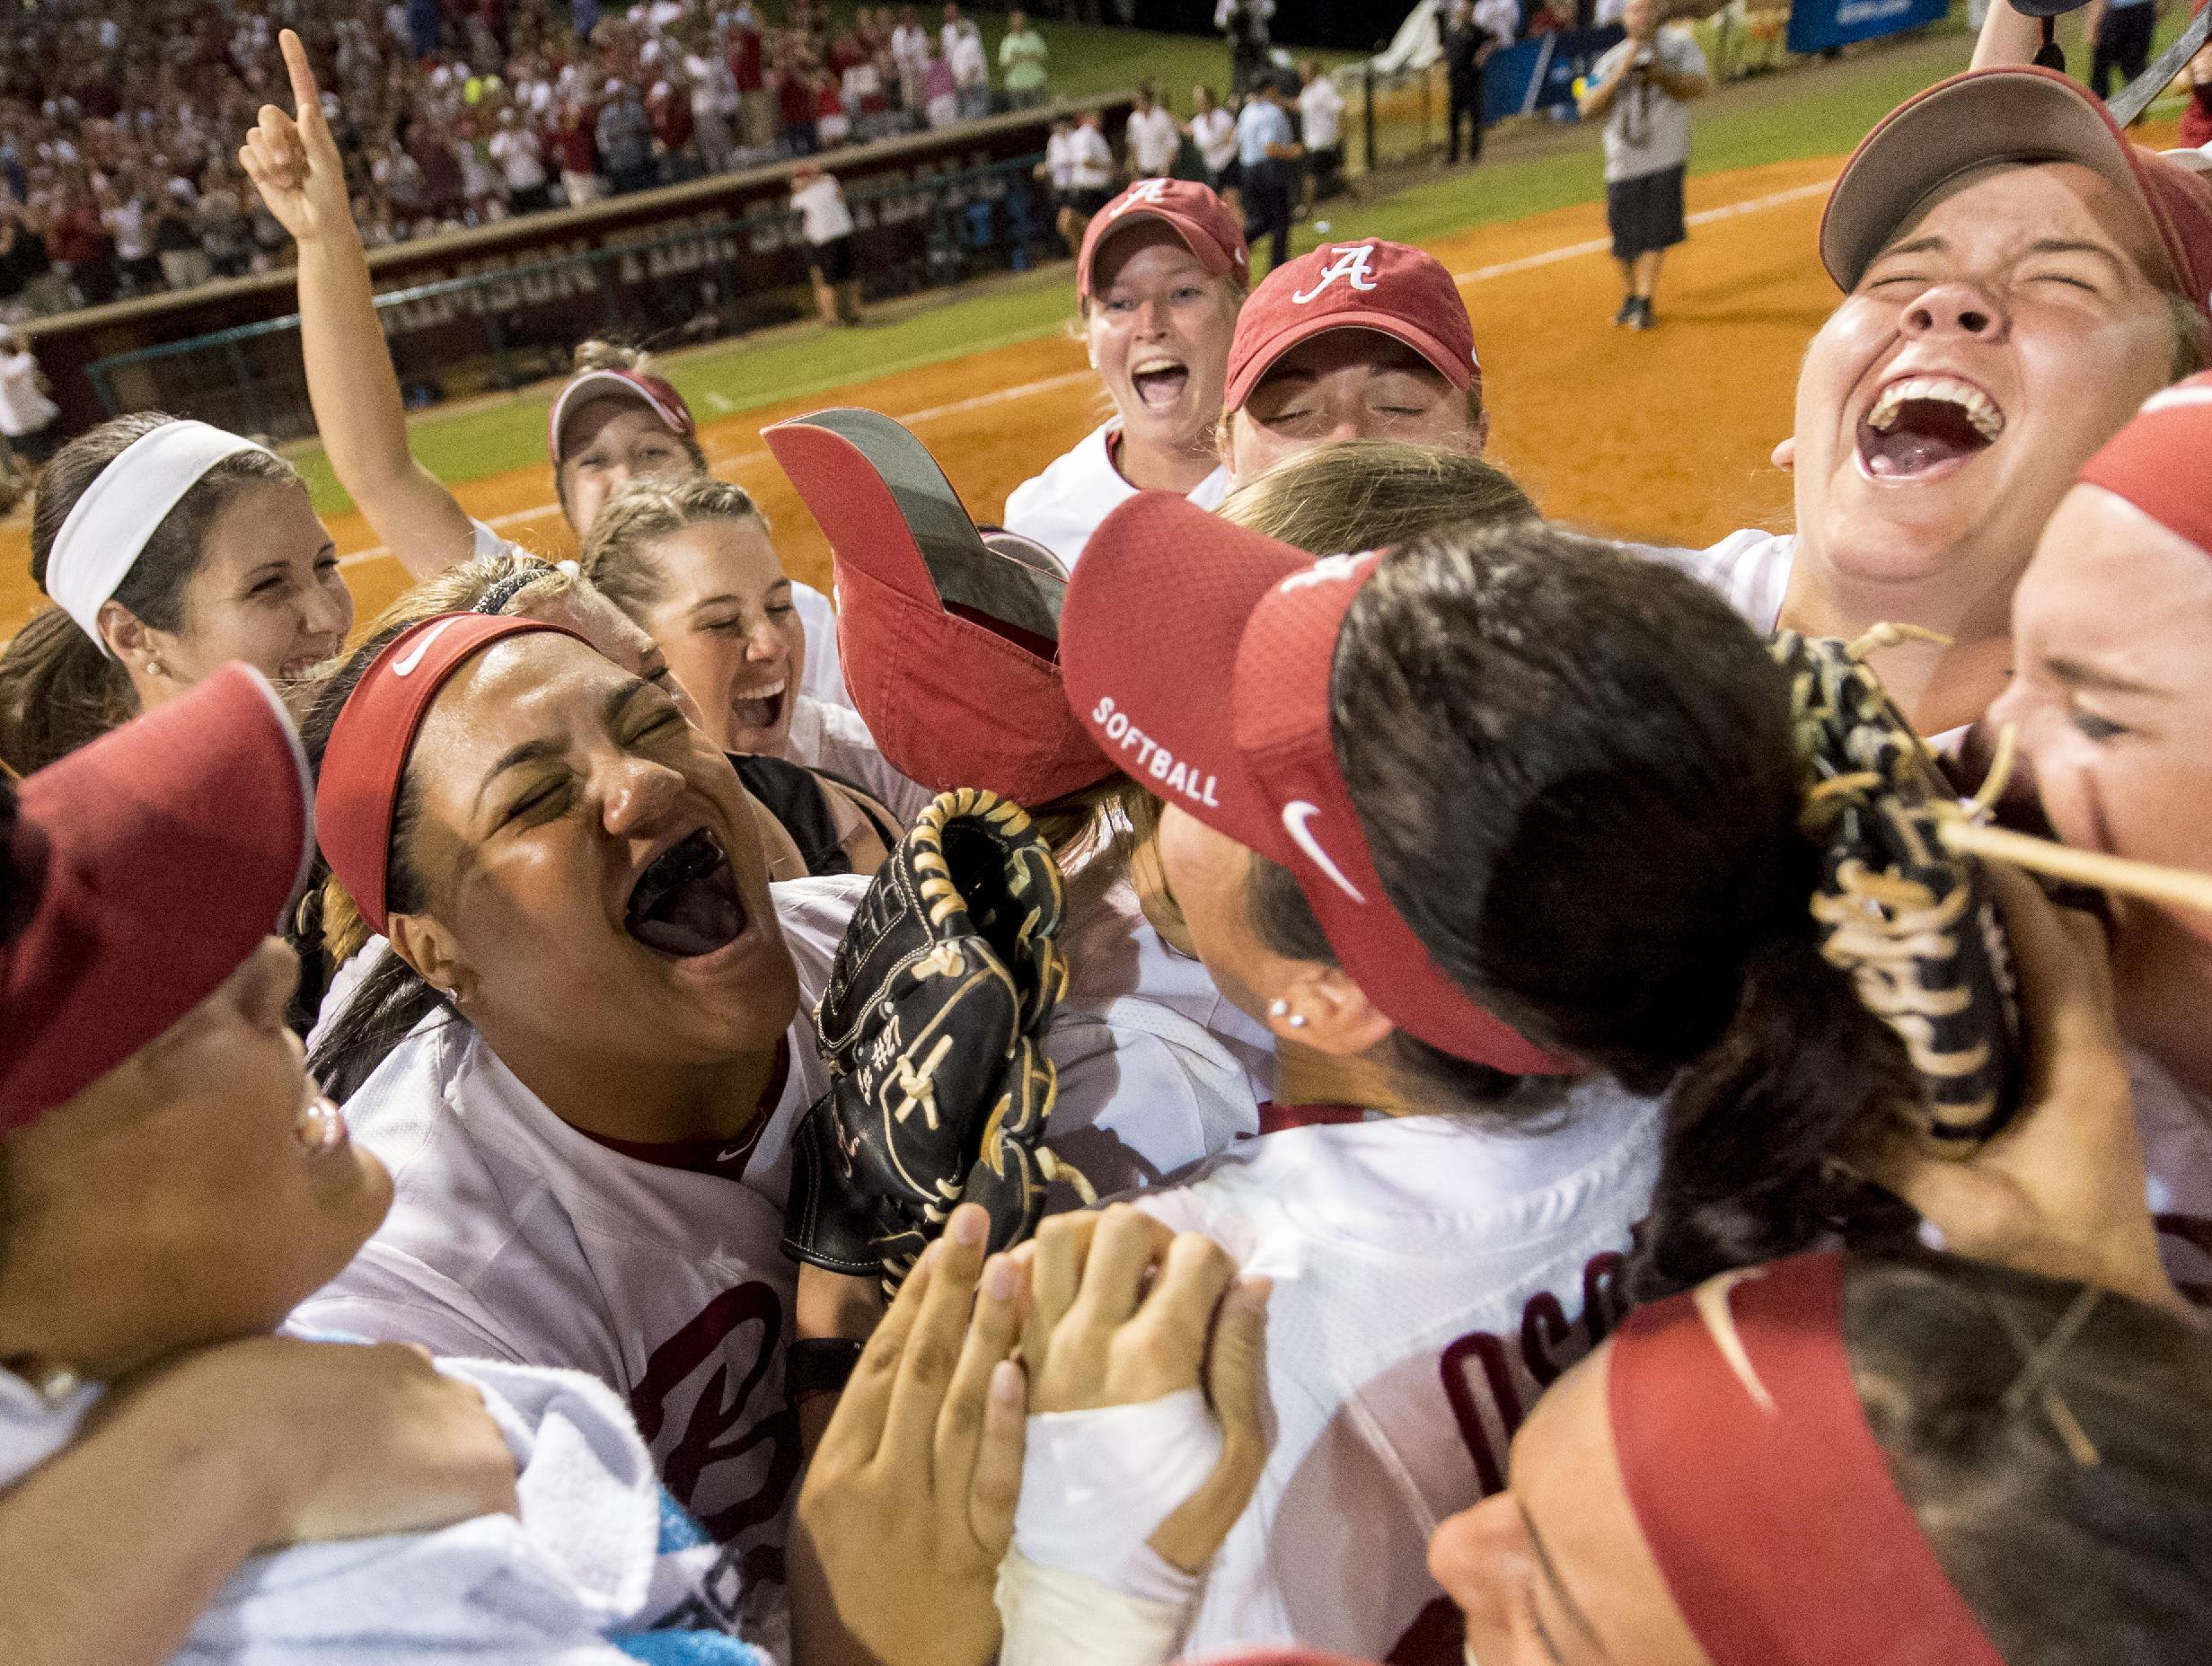 Florida seeks softball title repeat